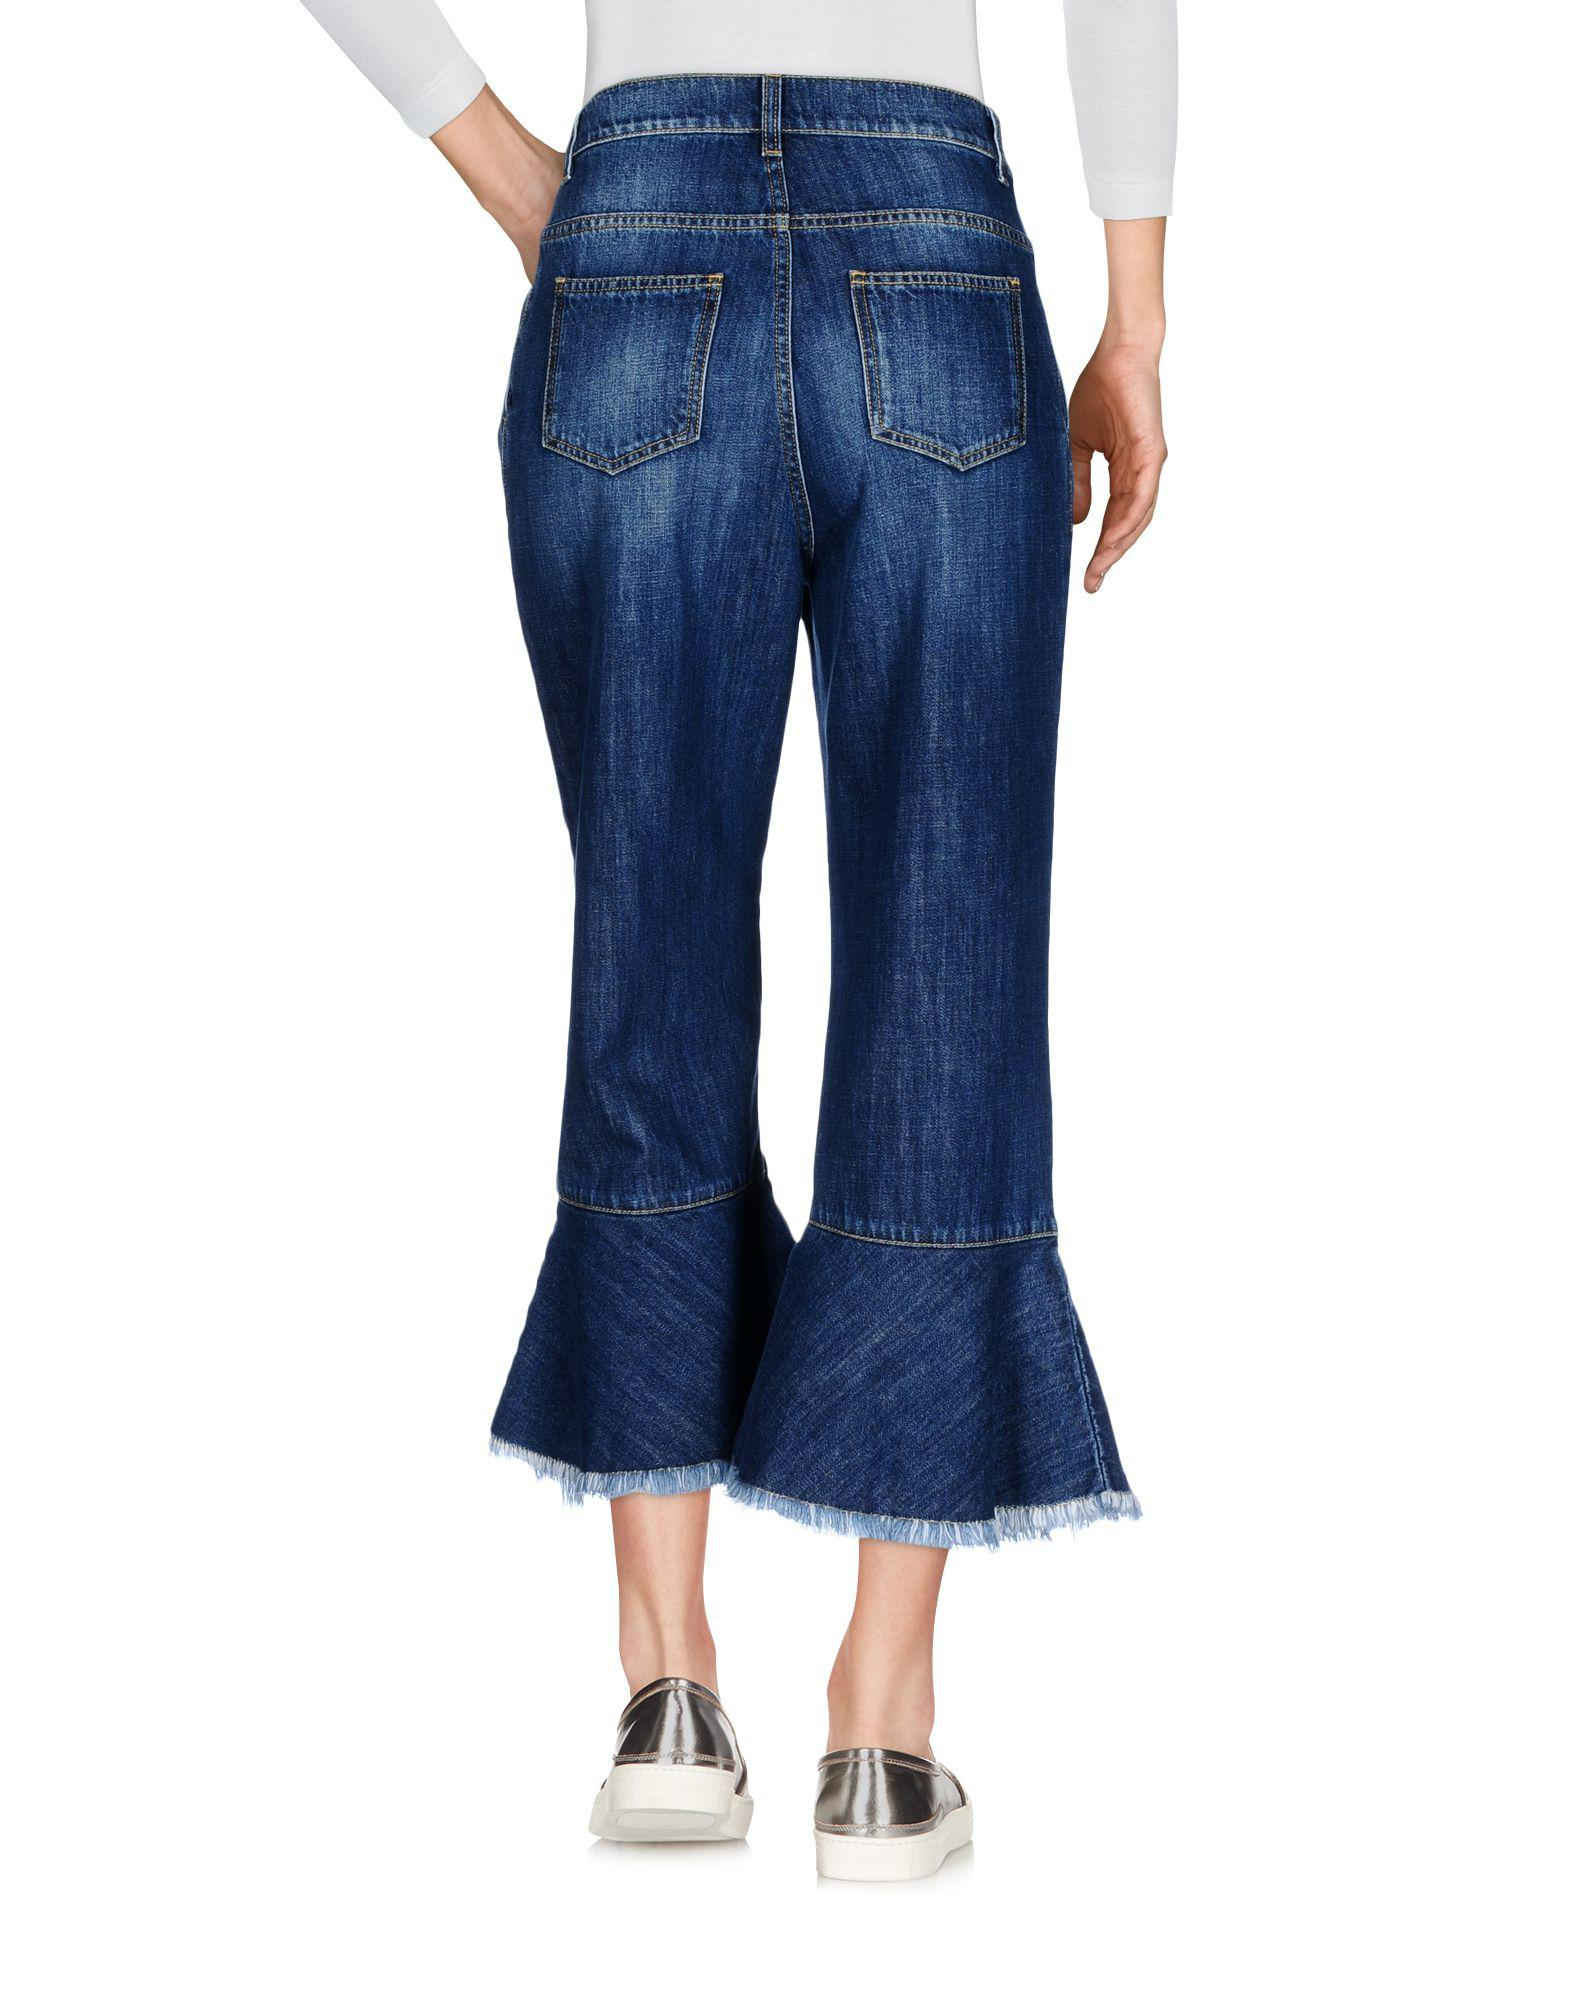 DENIM - Denim capris Suoli Discounts Cheap Price Clearance New Discount Extremely Footlocker Finishline Outlet Discounts bB5B00Ek0